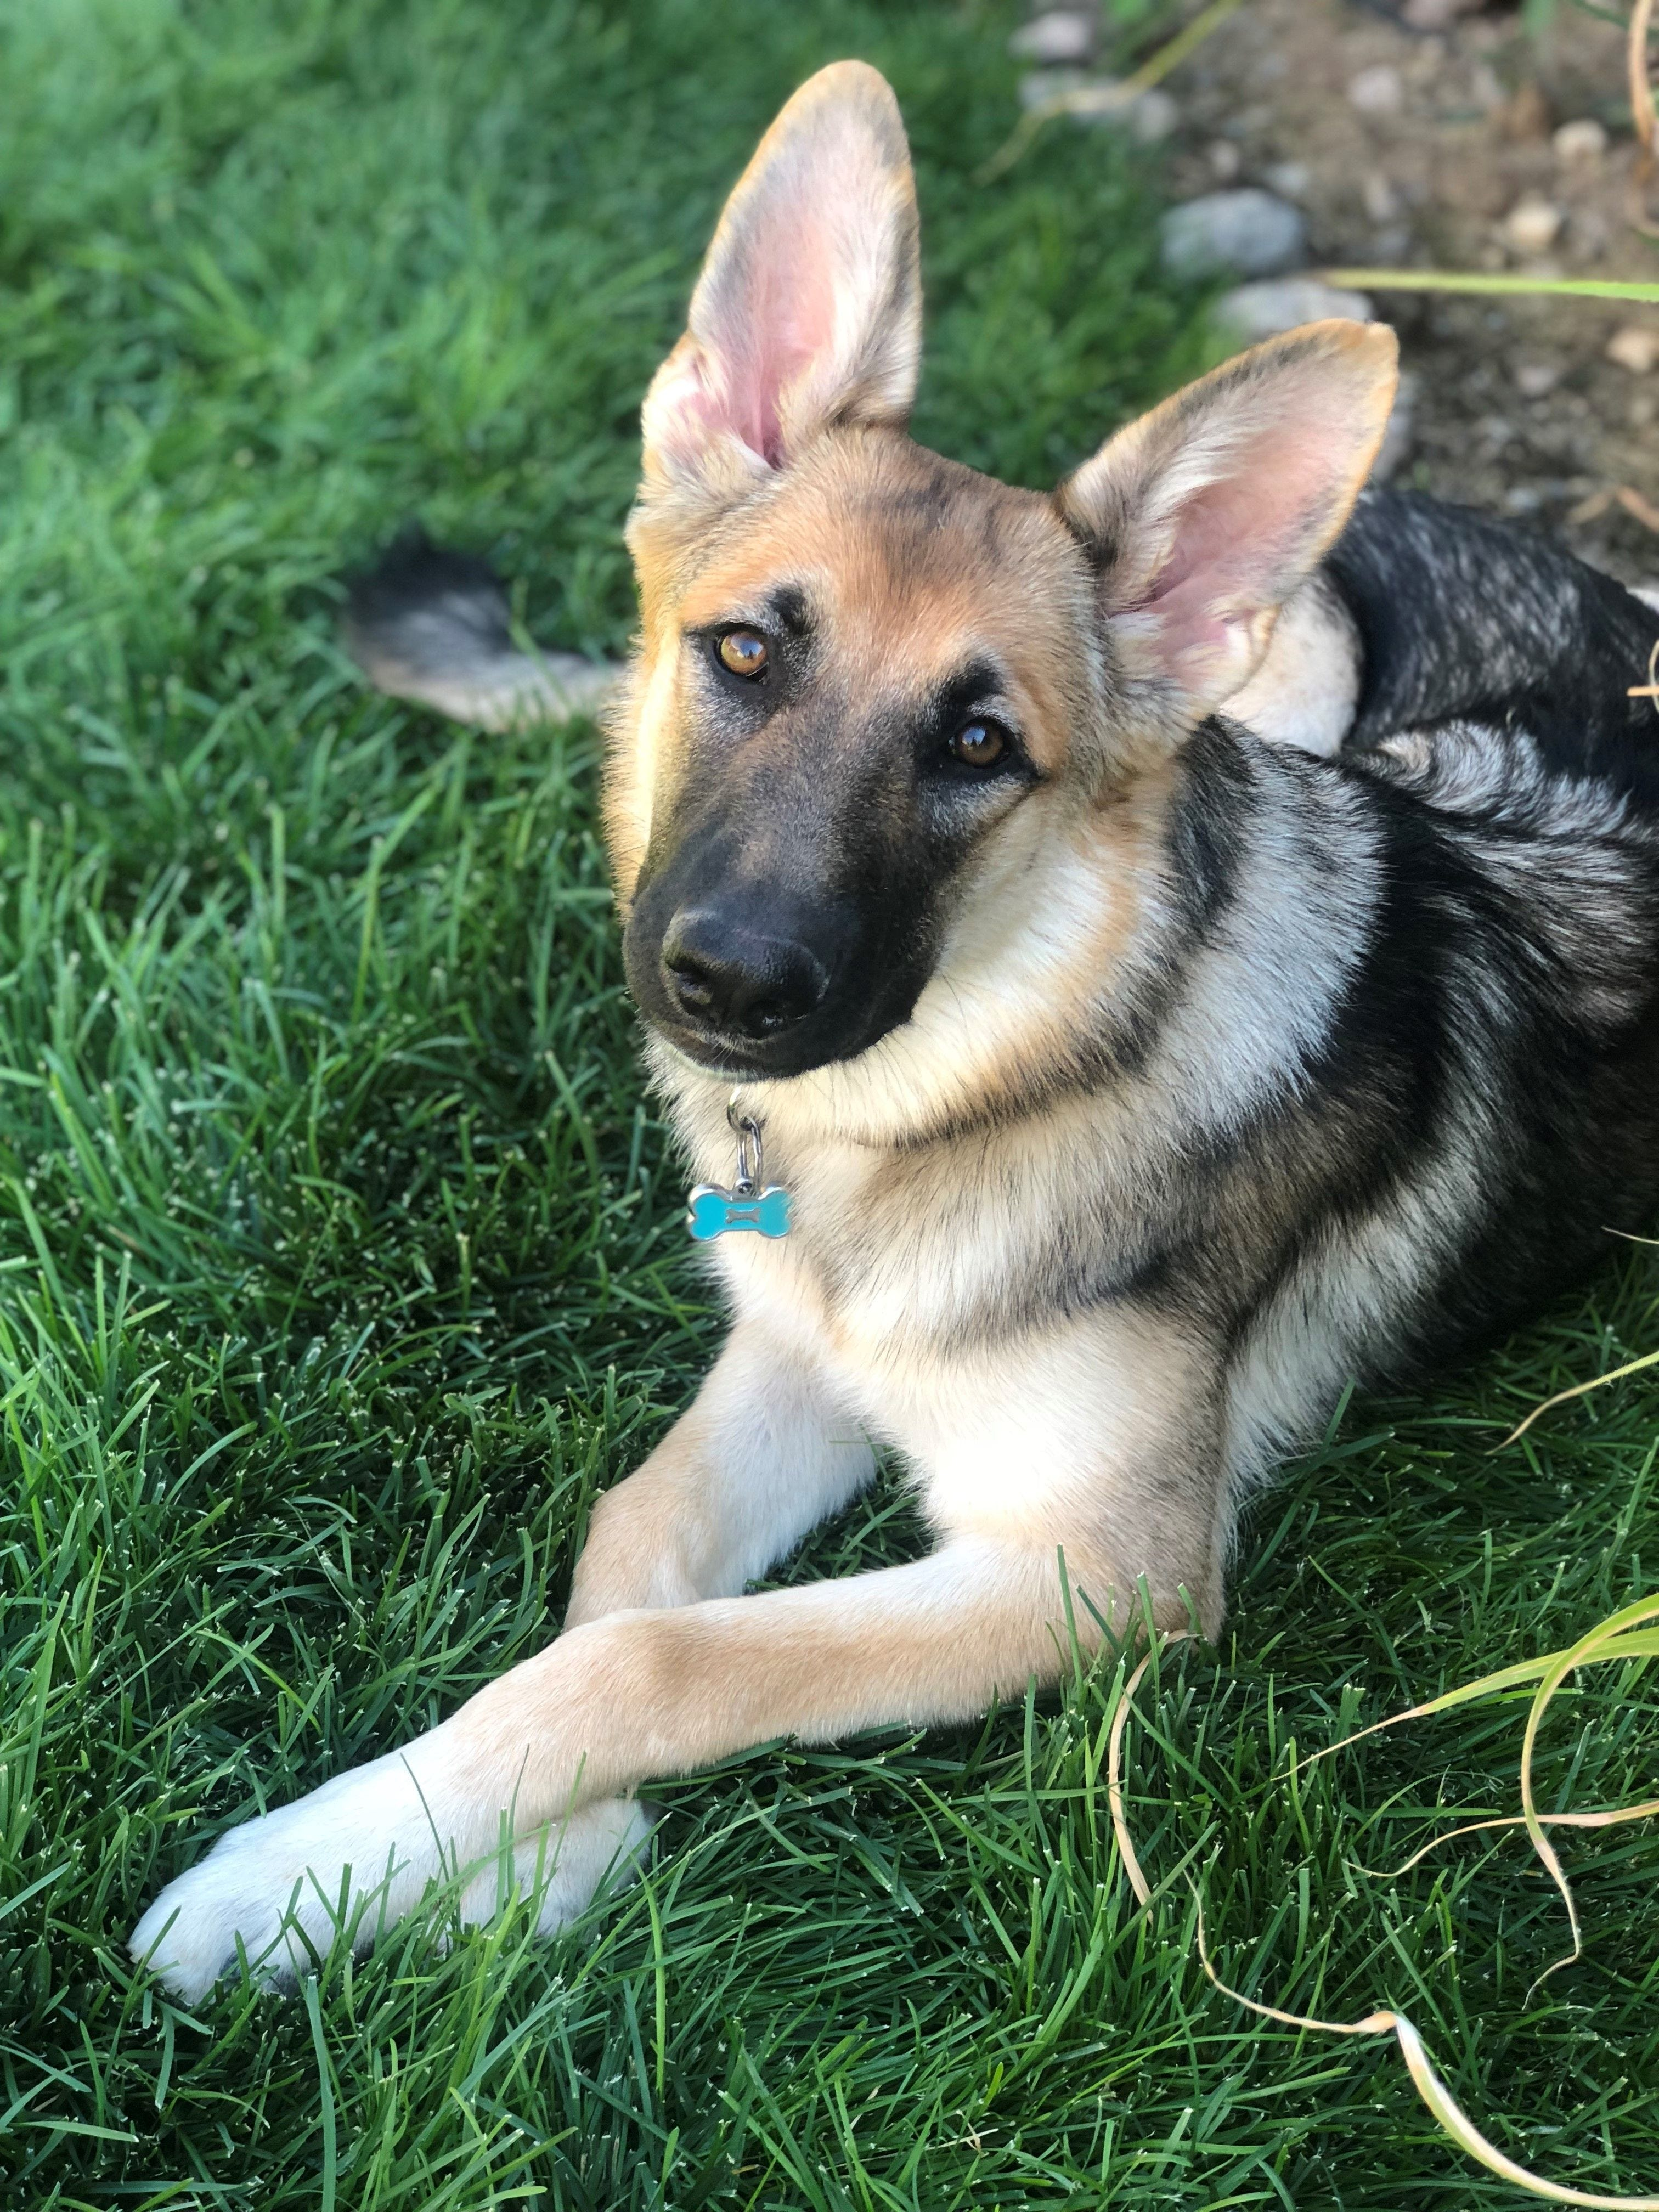 Mad Max? Dog's seizure sparks lawsuits, confinement at Southern